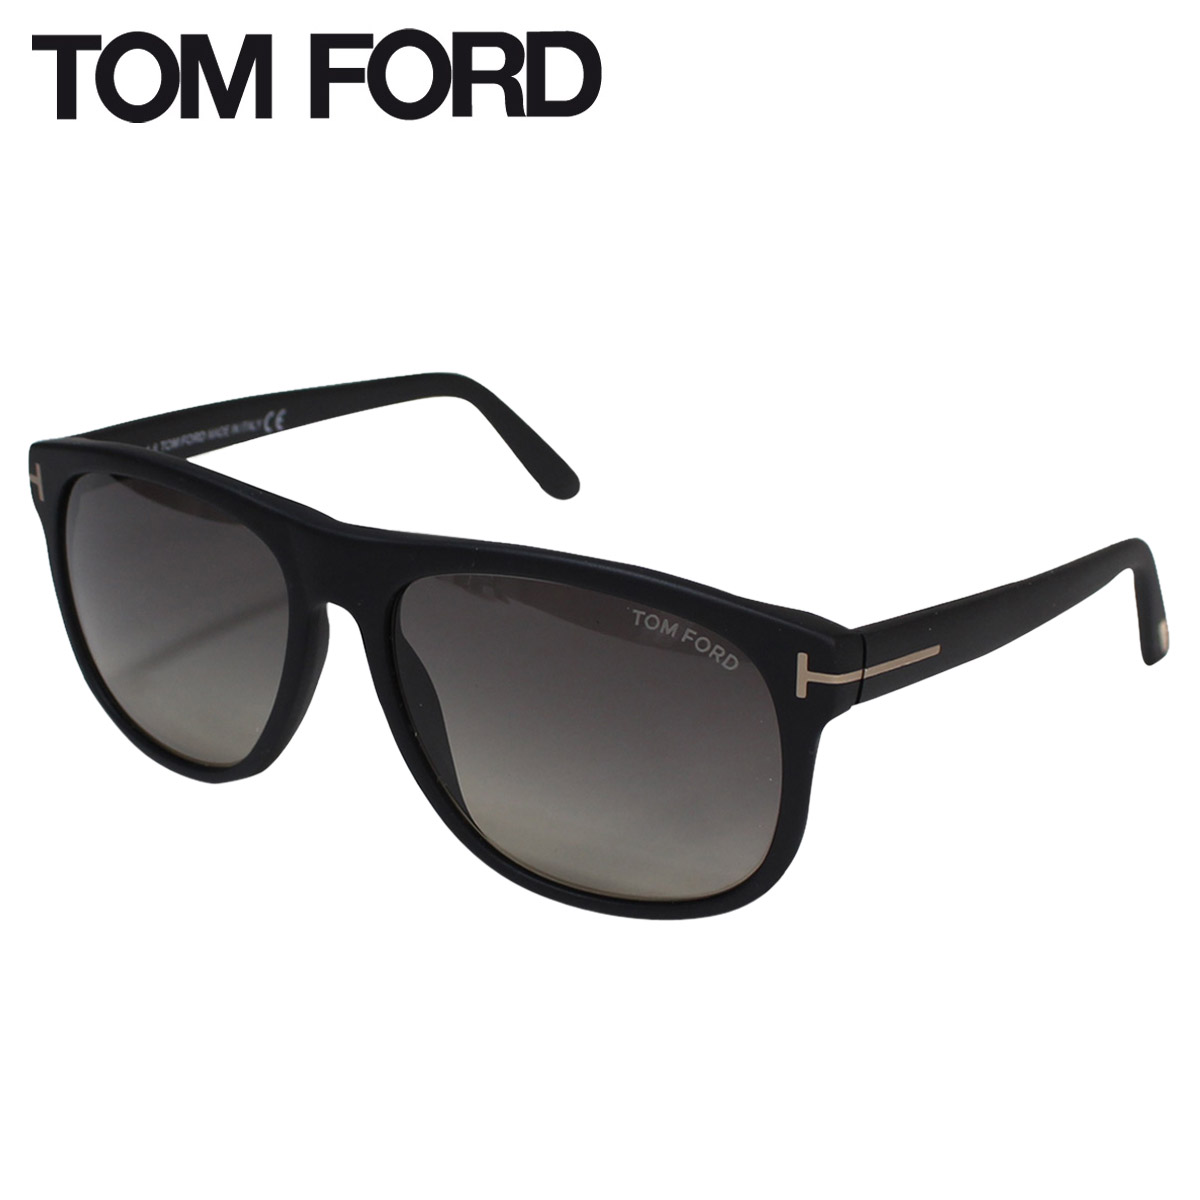 767b2040b82f Tom Ford Sunglasses Dubai Mall